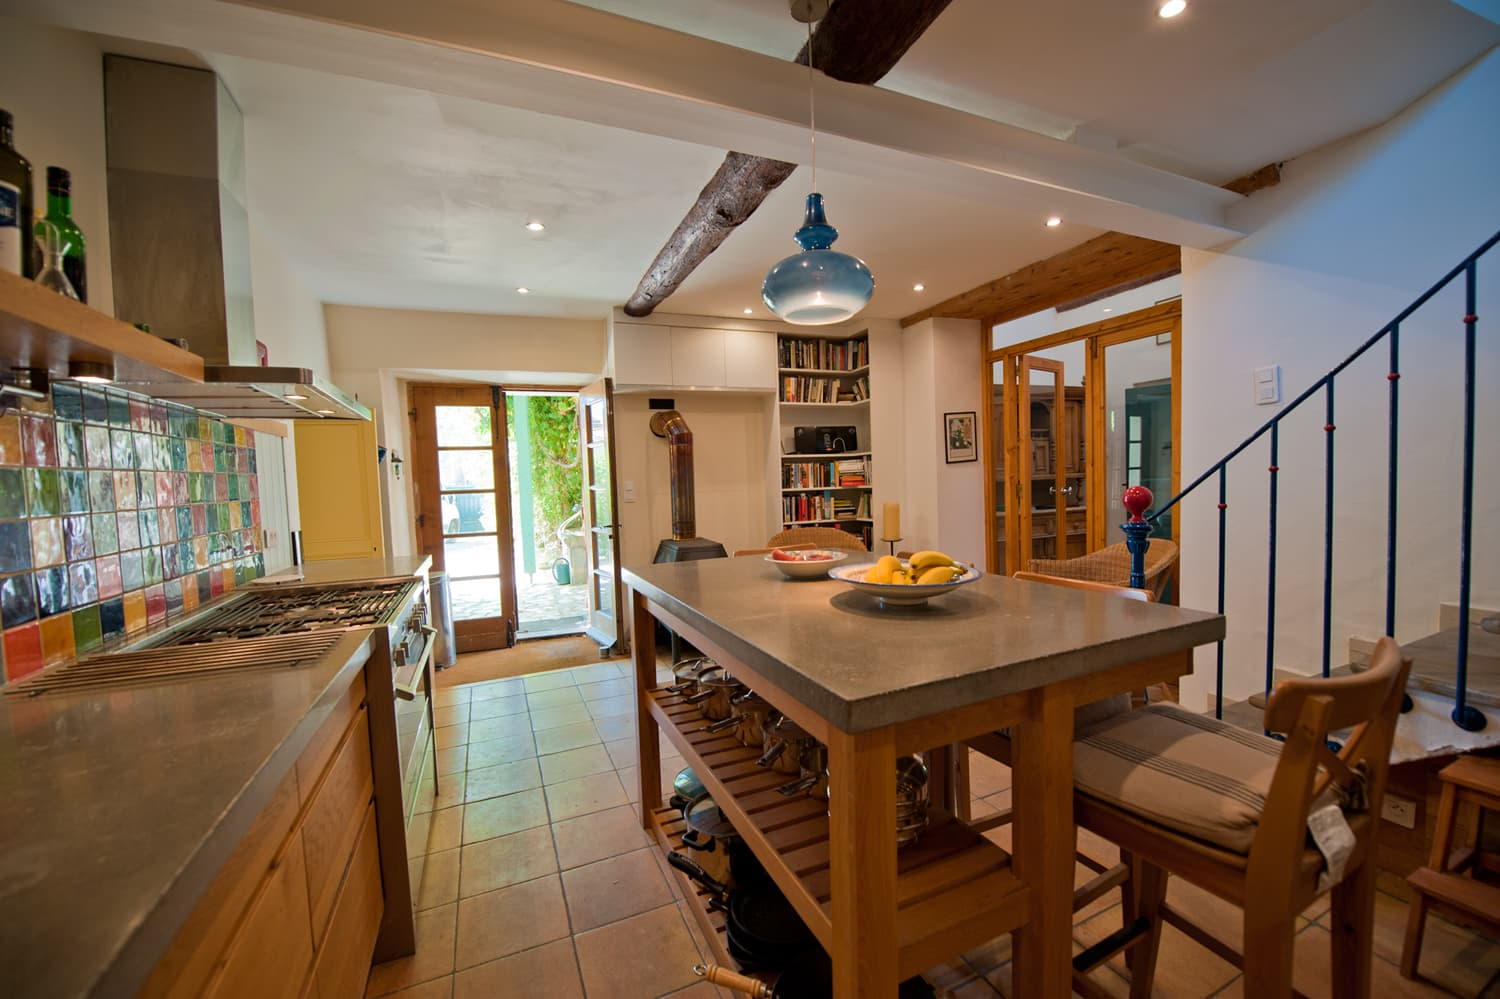 Kitchen in Languedoc rental home